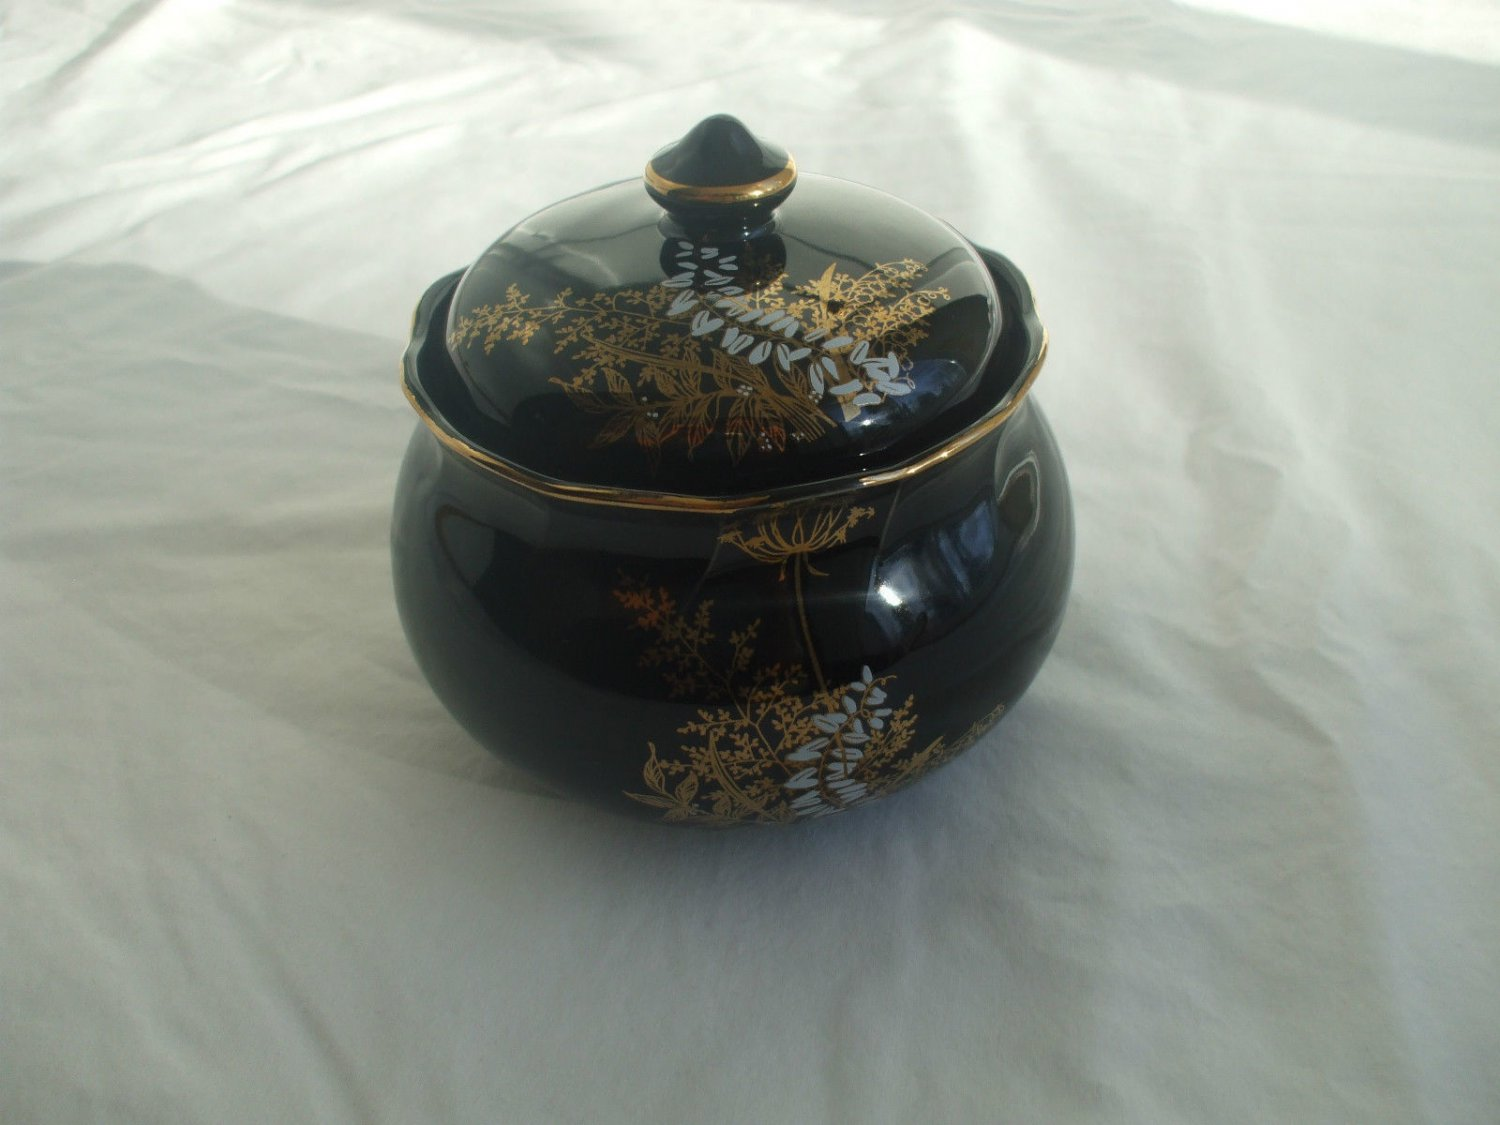 Black Glass Candy Or Sugar Dish With Lid Gold Paint Decoration Trim And Design